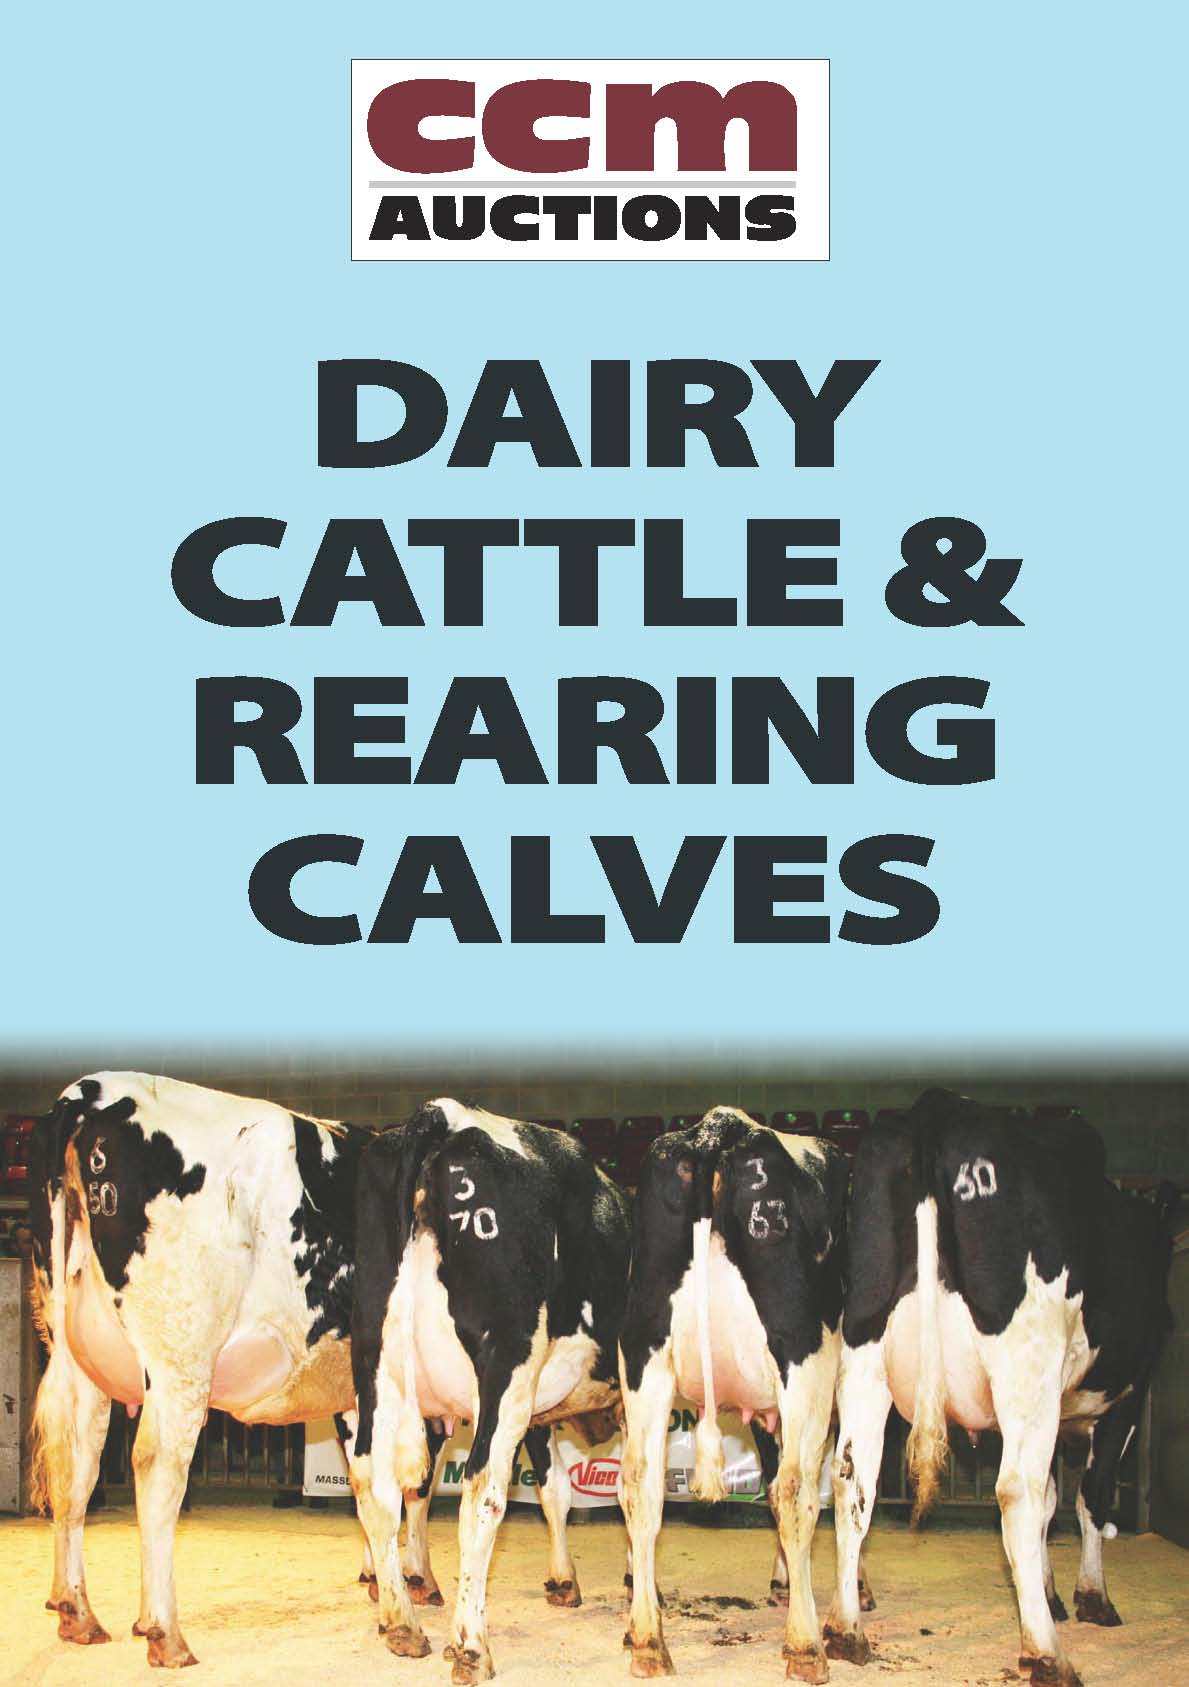 DAIRY & CALVES - MONDAY 8TH JUNE 2015